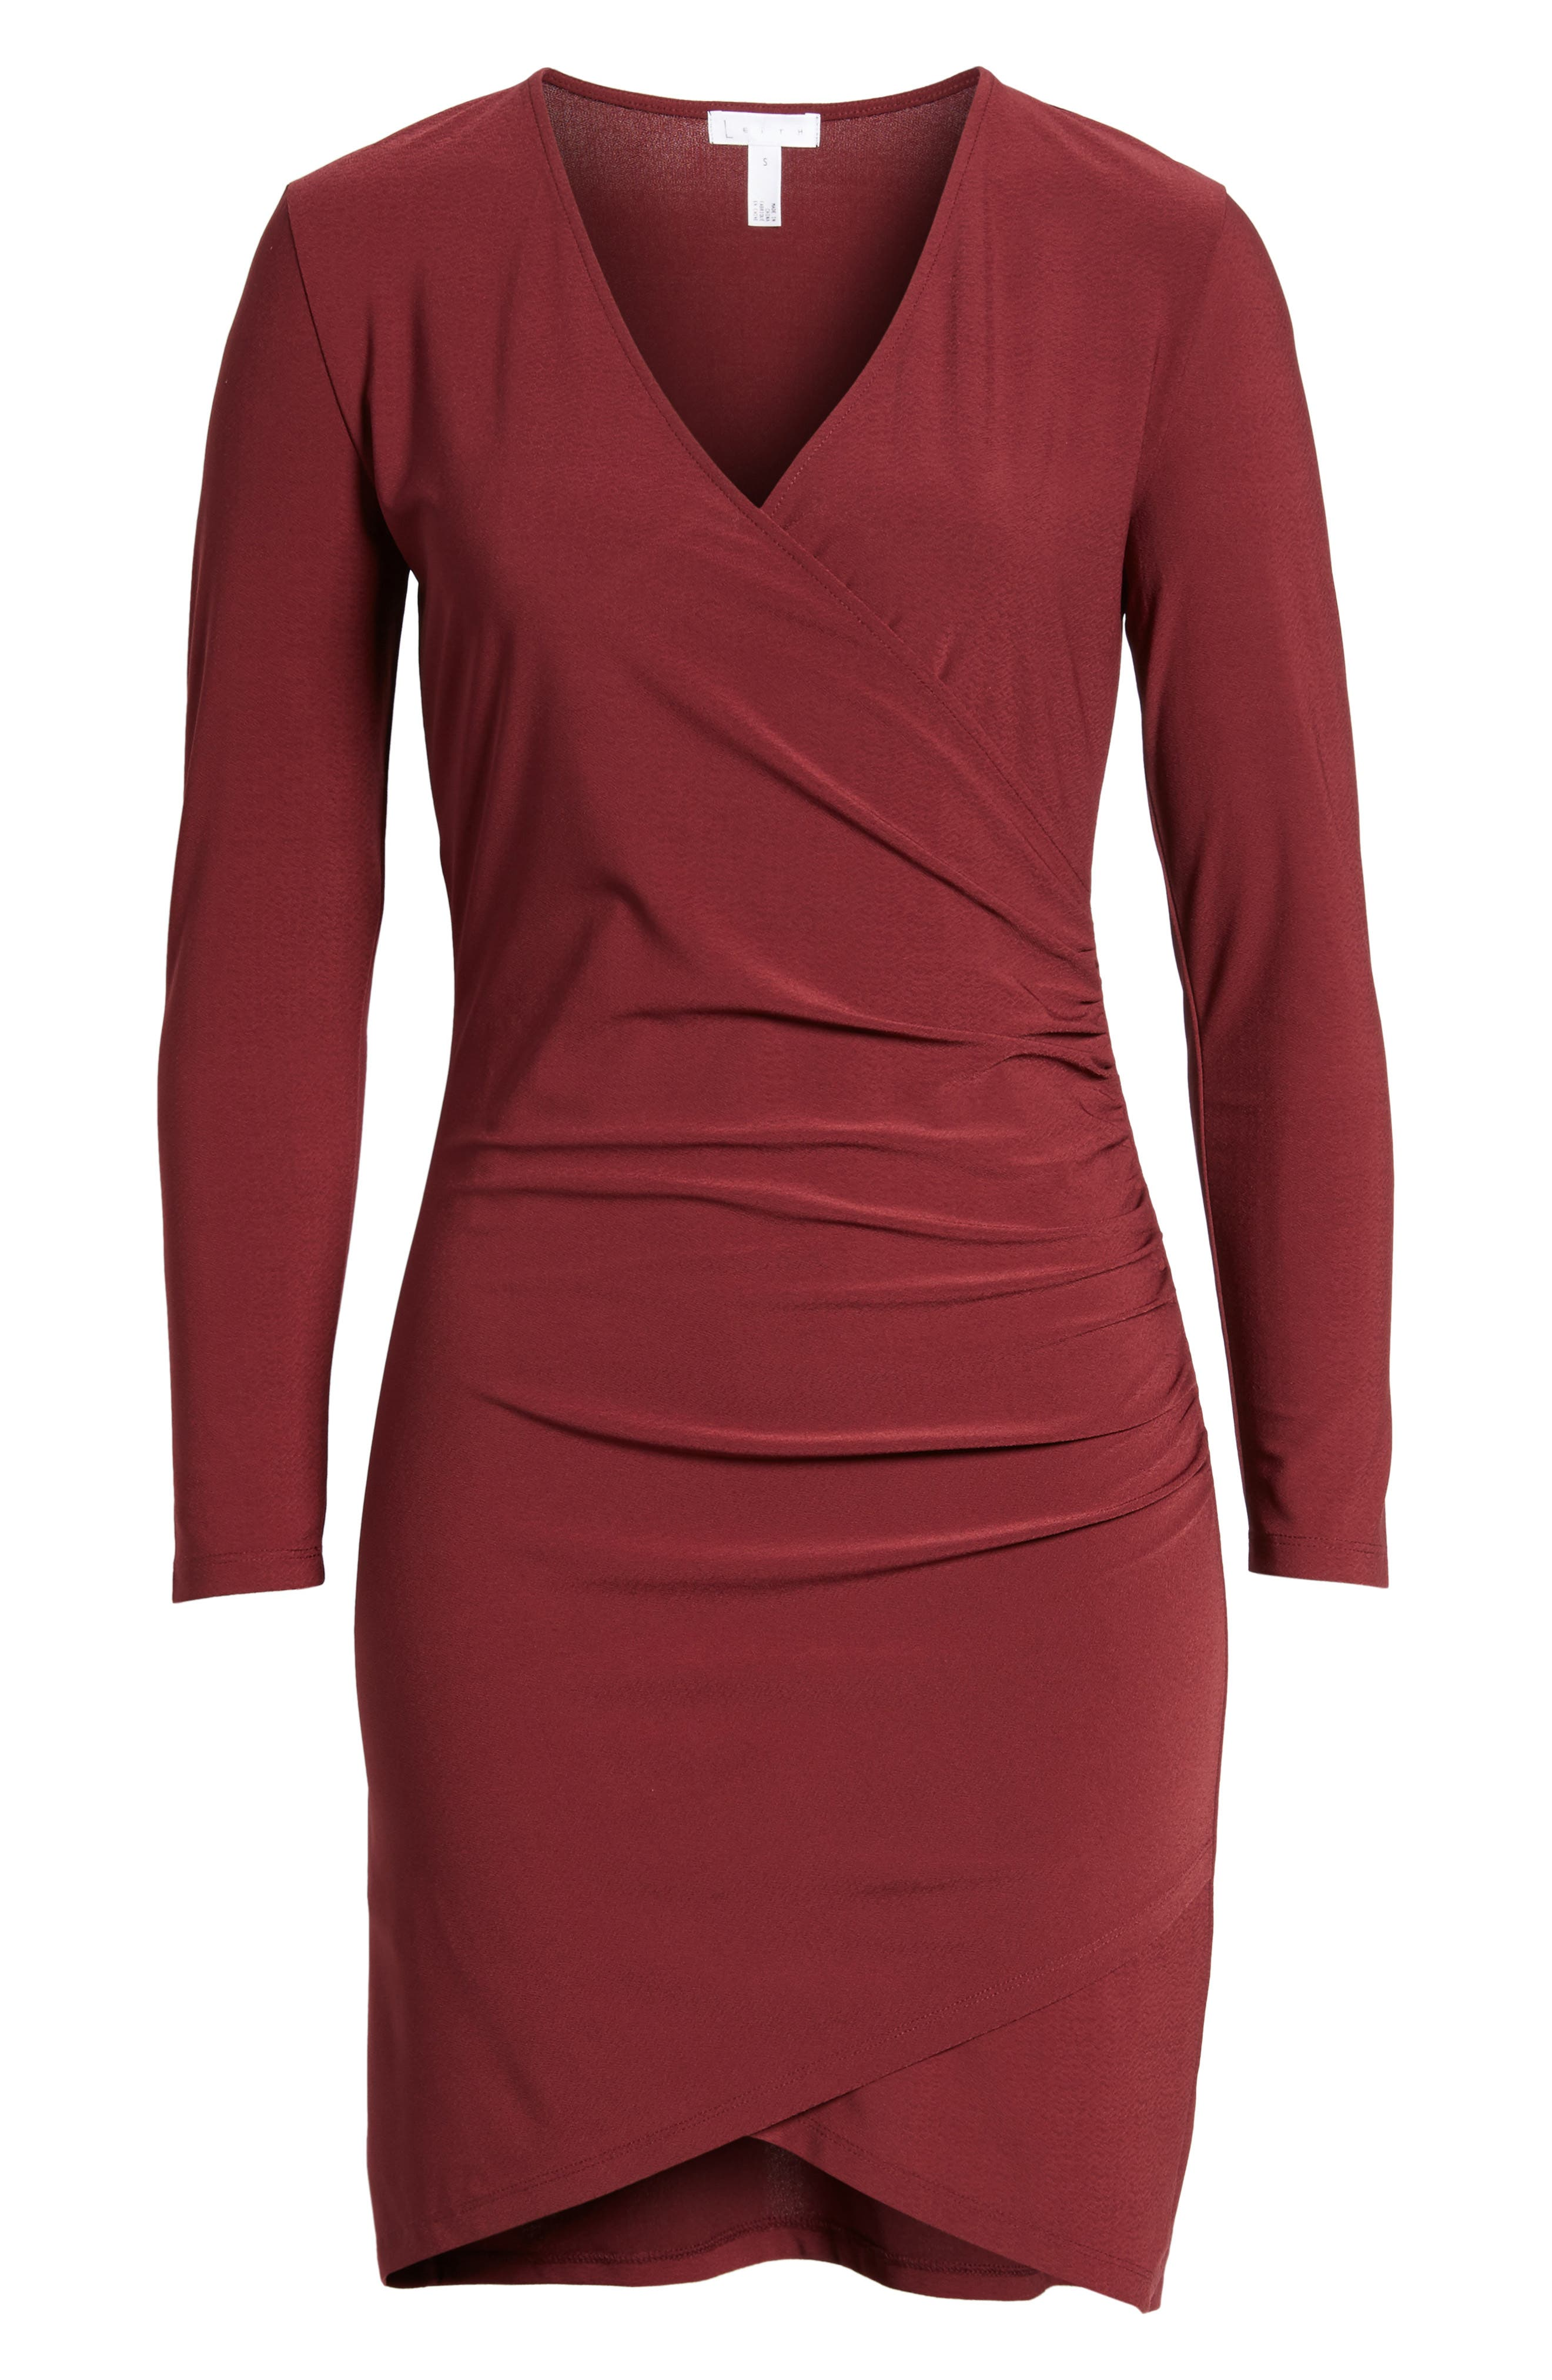 Ruched Sheath Dress,                             Alternate thumbnail 6, color,                             Red Tannin